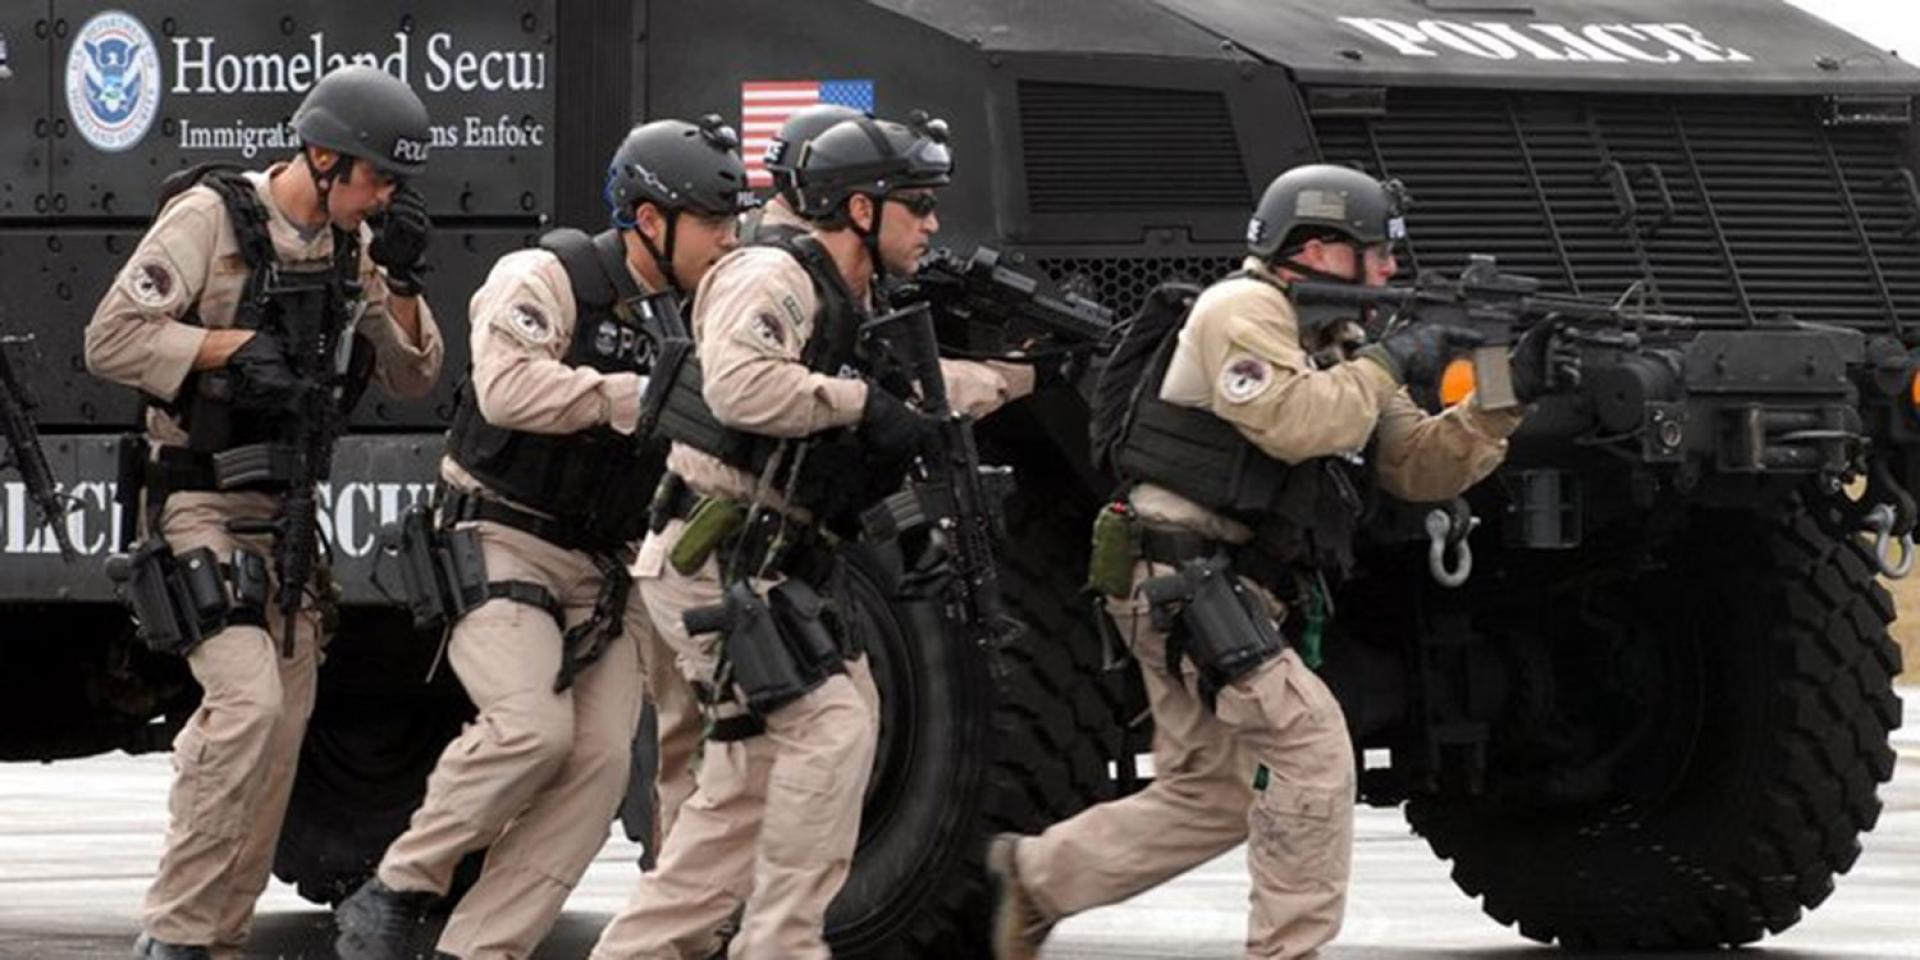 Photo of ICE Police with guns and armored vehicle